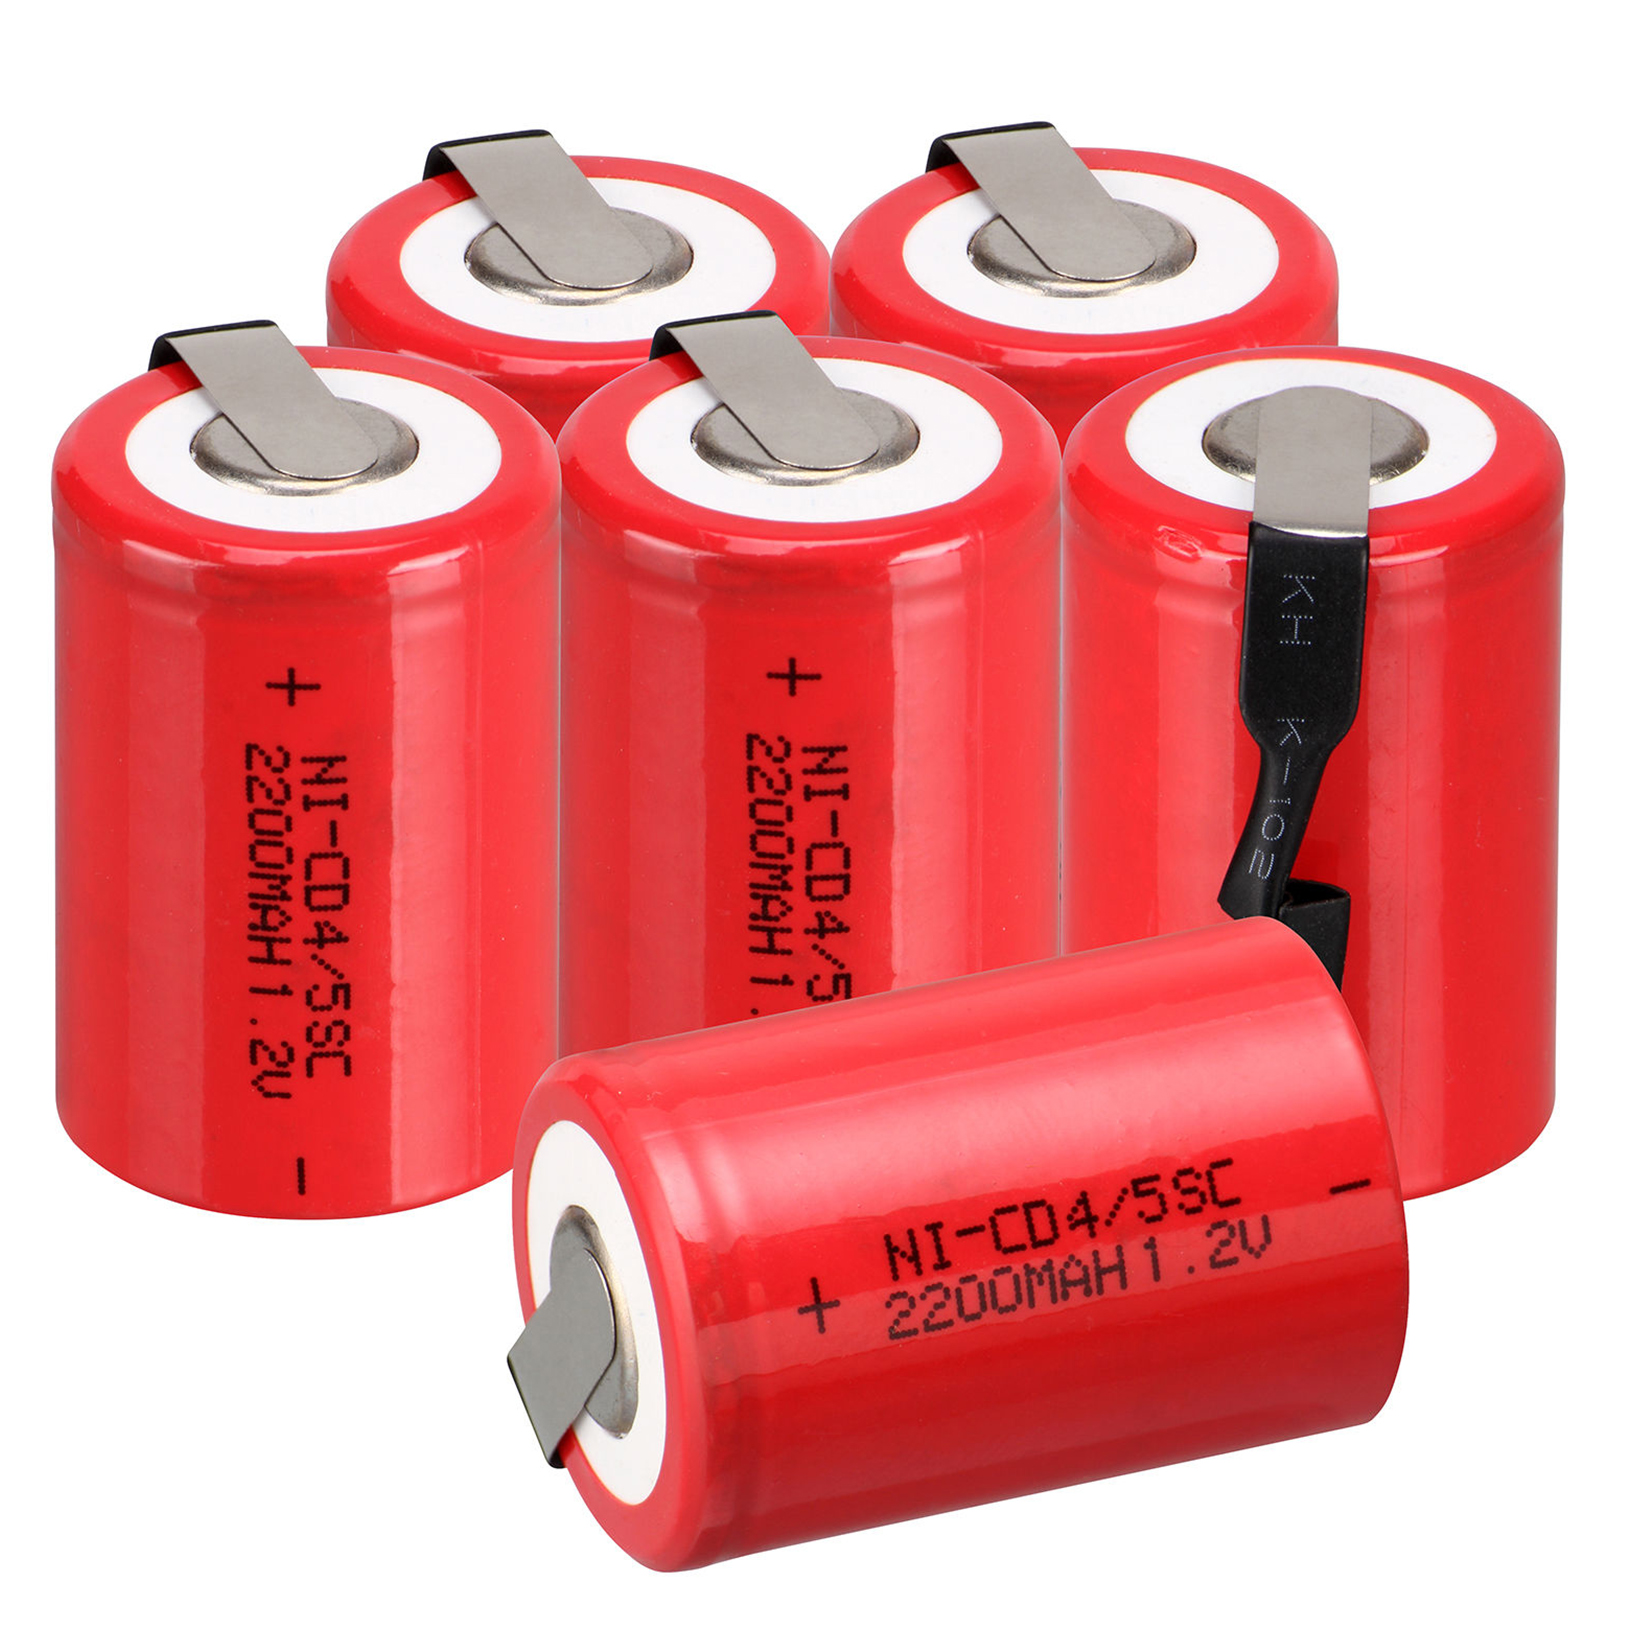 2/6/12/16pcs NiCd 4/5 SubC Sub C 1.2V 2200mAh &Tab Red Ni-Cd Rechargeable Battery Lot of